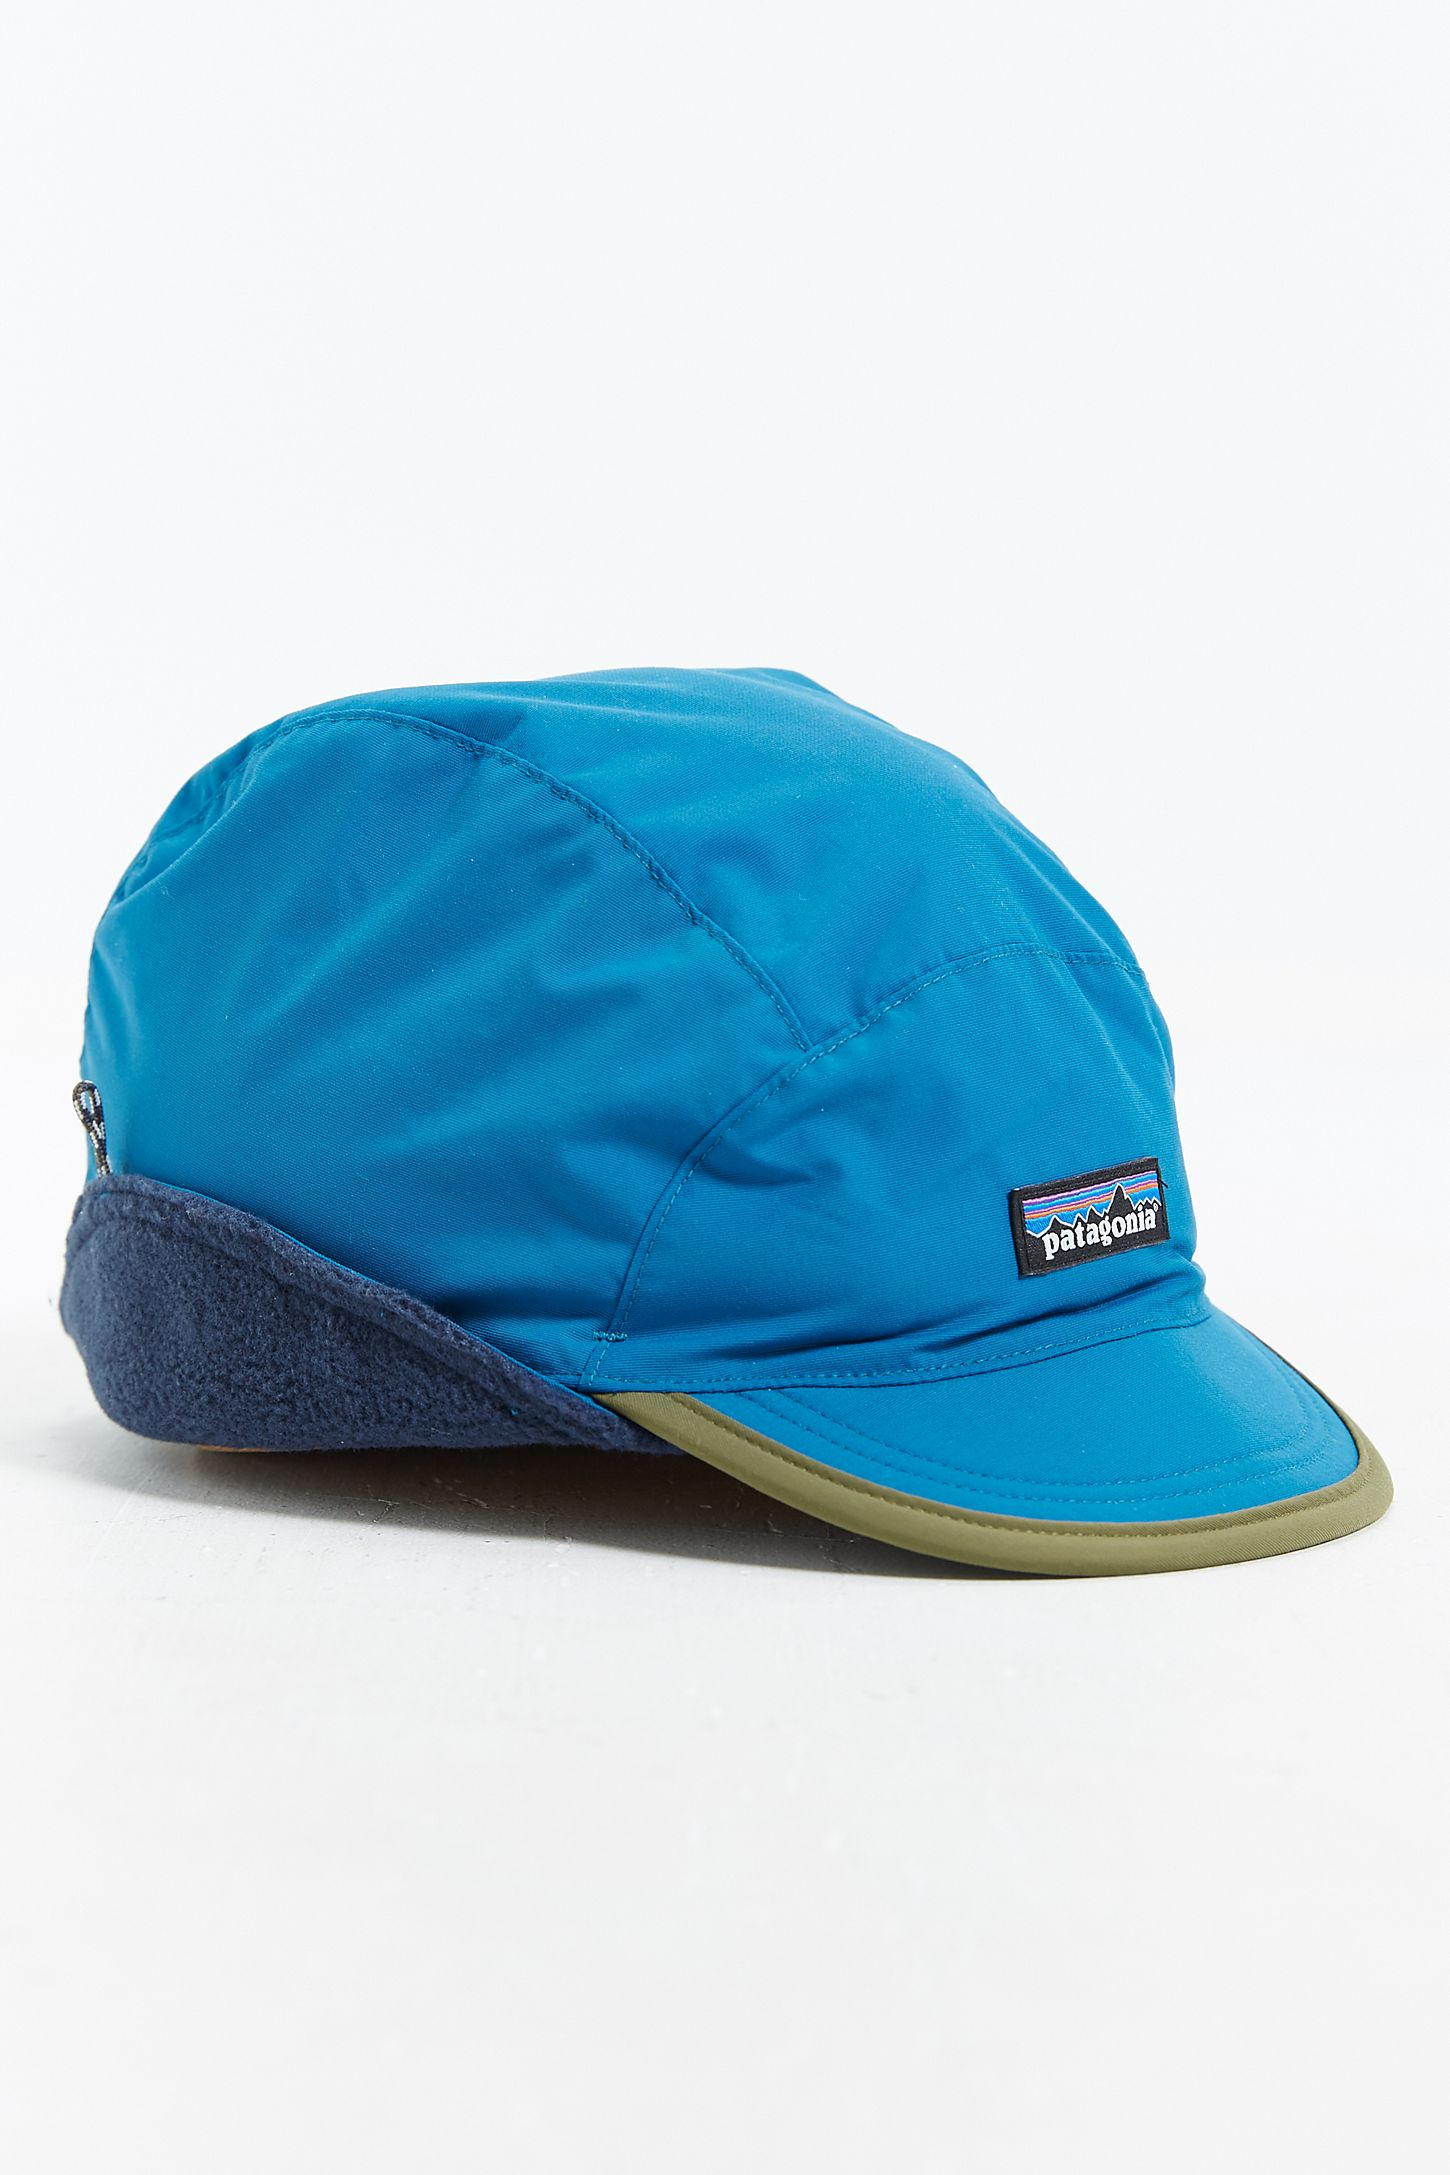 fa12540b1bc Patagonia Shelled Synchilla Duckbill Hat